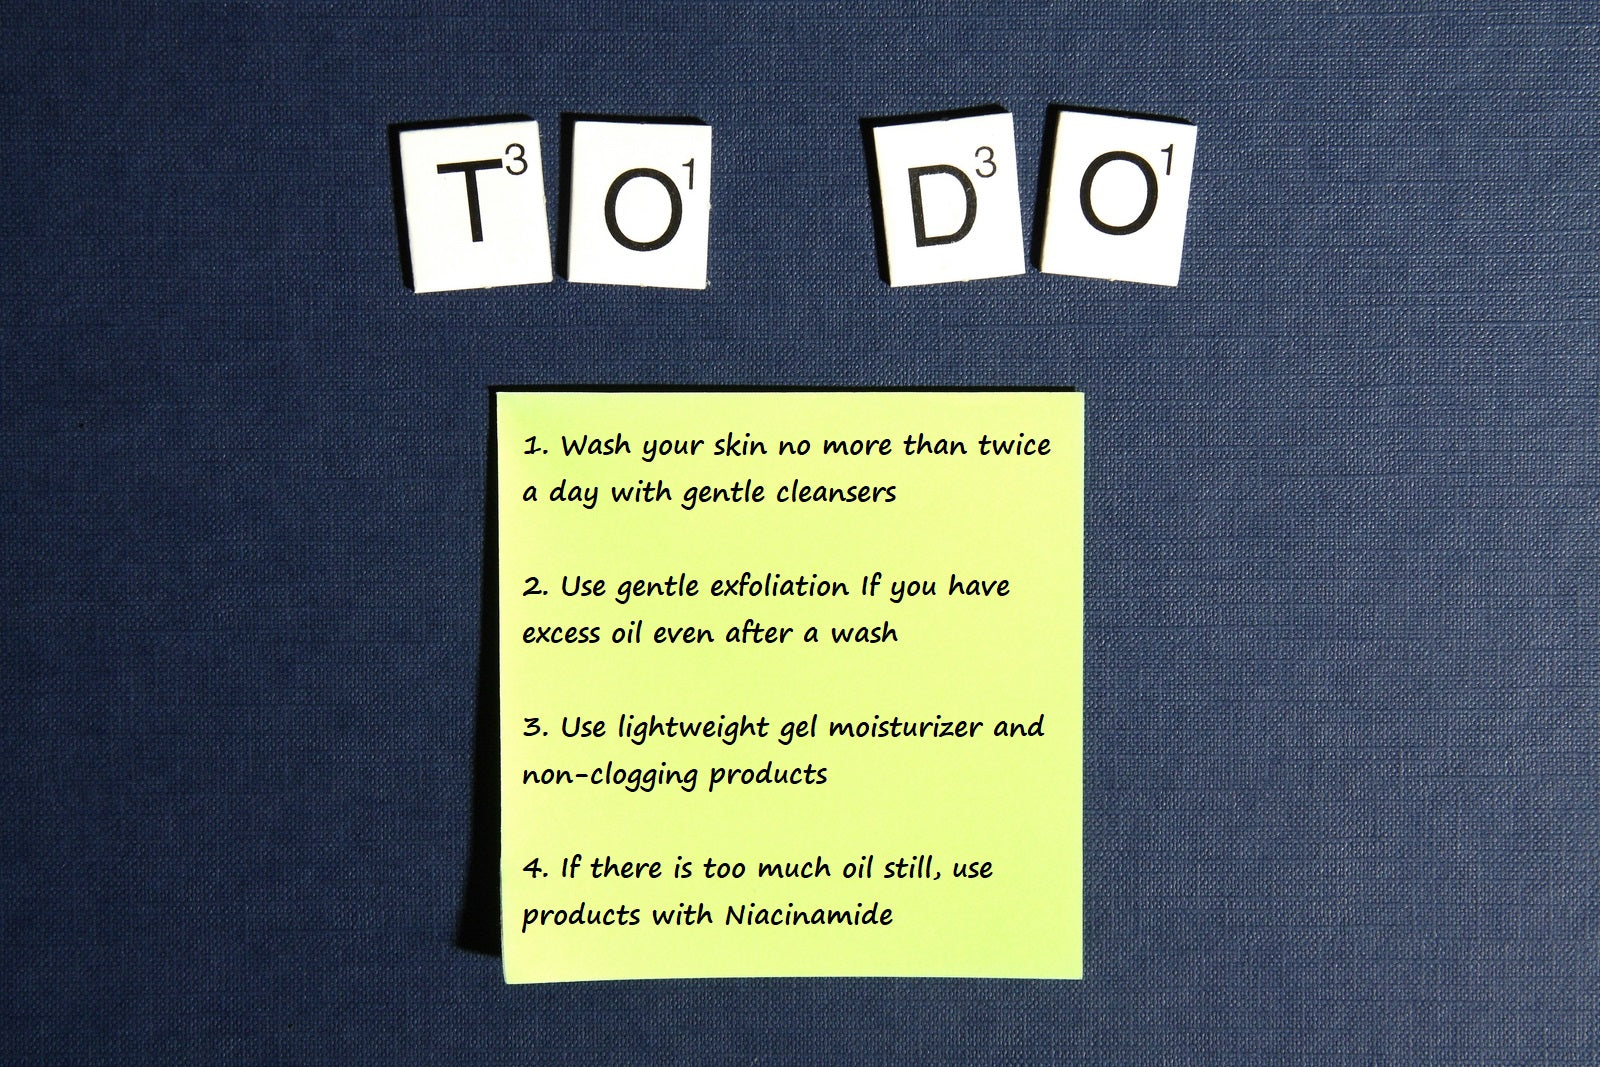 to do list for oily skin